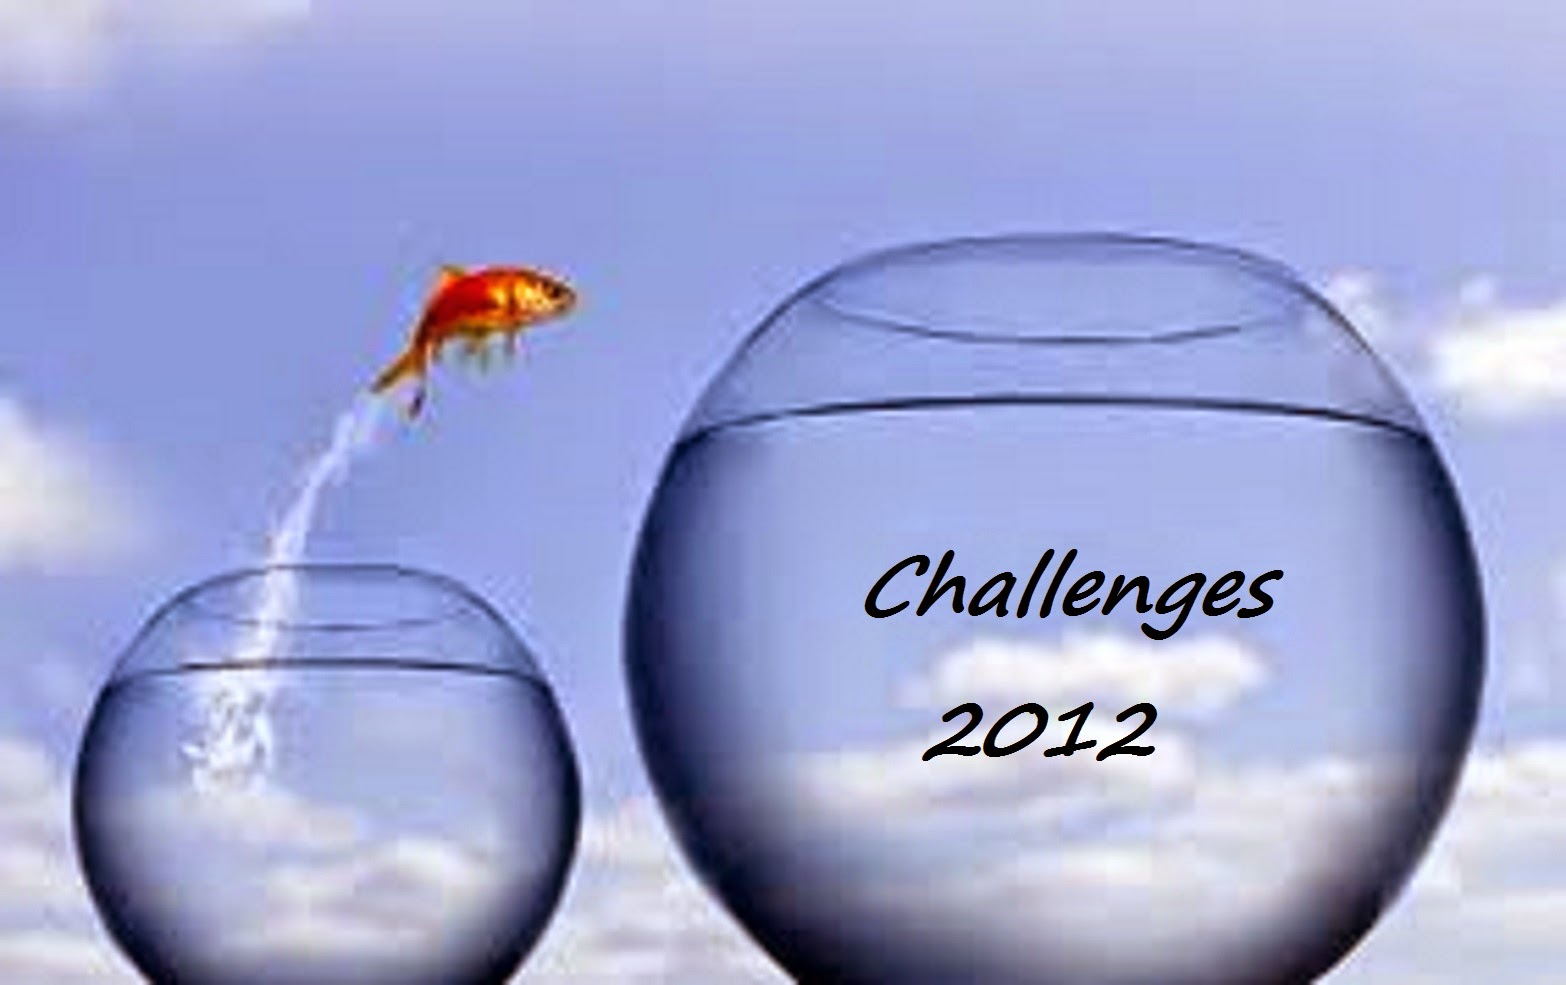 http://ang-in.blogspot.fr/search/label/challenge%202012